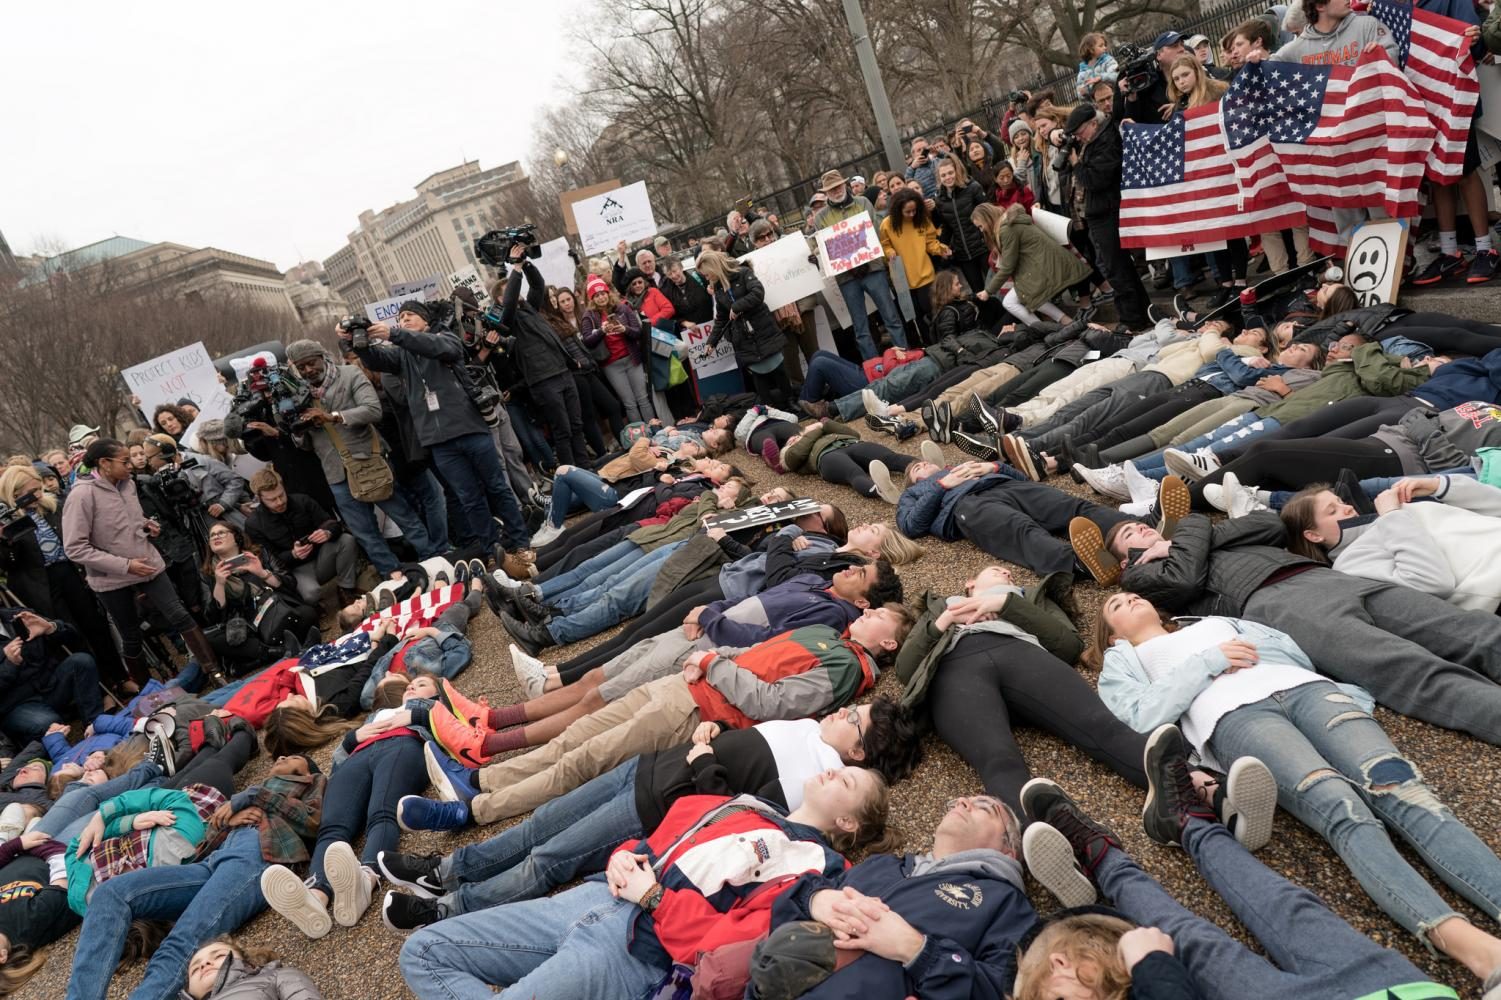 Students protest gun laws in Washington D.C. after the Marjory Stoneman- Douglas shooting.